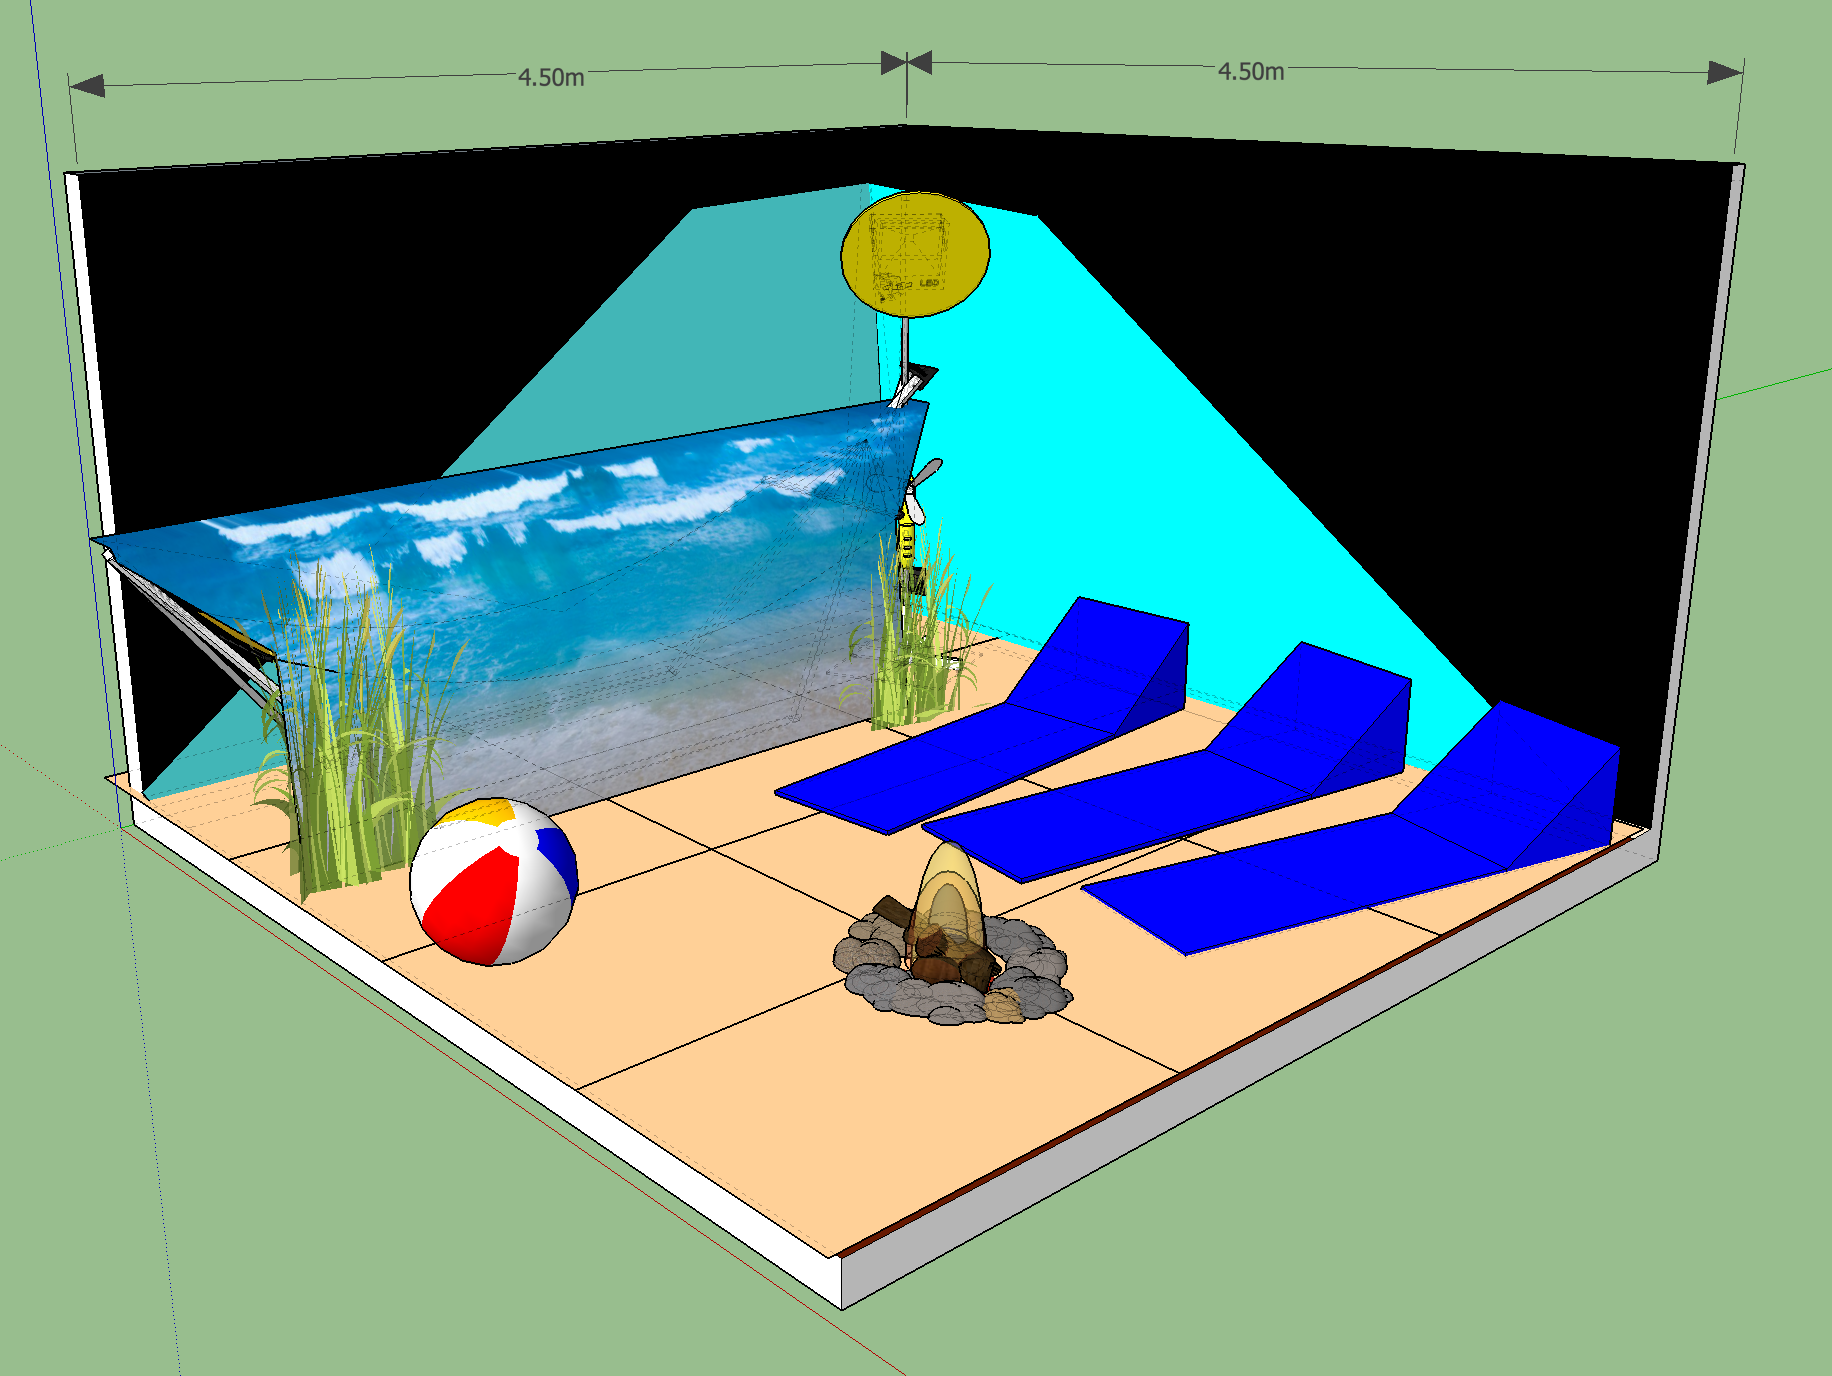 33c3:virtual_beach_v5.png